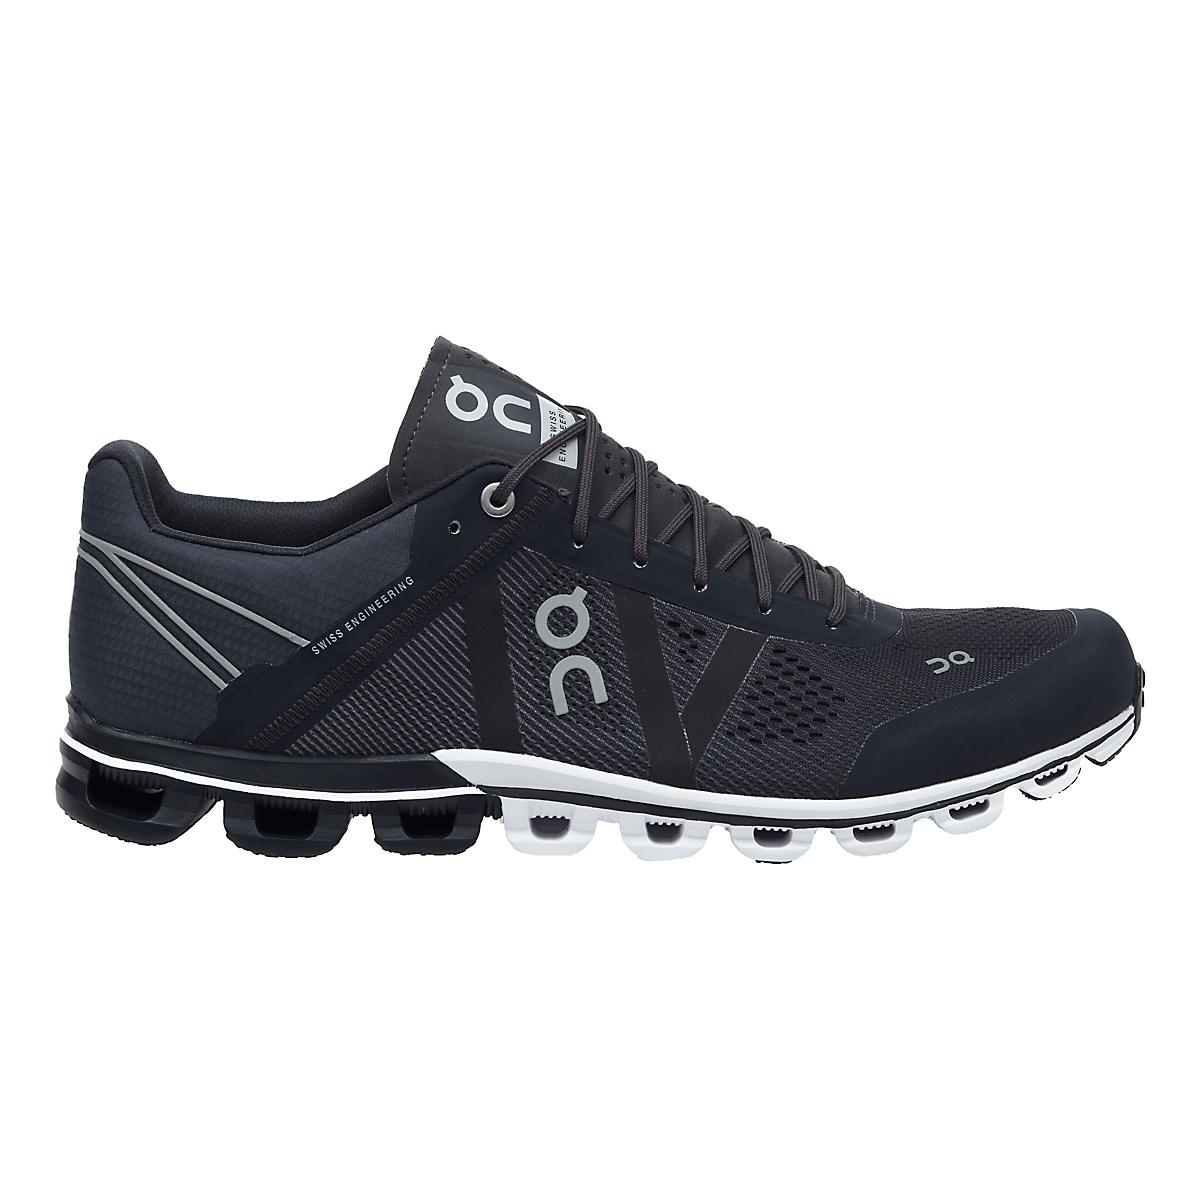 6d60b4d326d813 Cloudflow Men s Running Shoes for Sale from Road Runner Sports